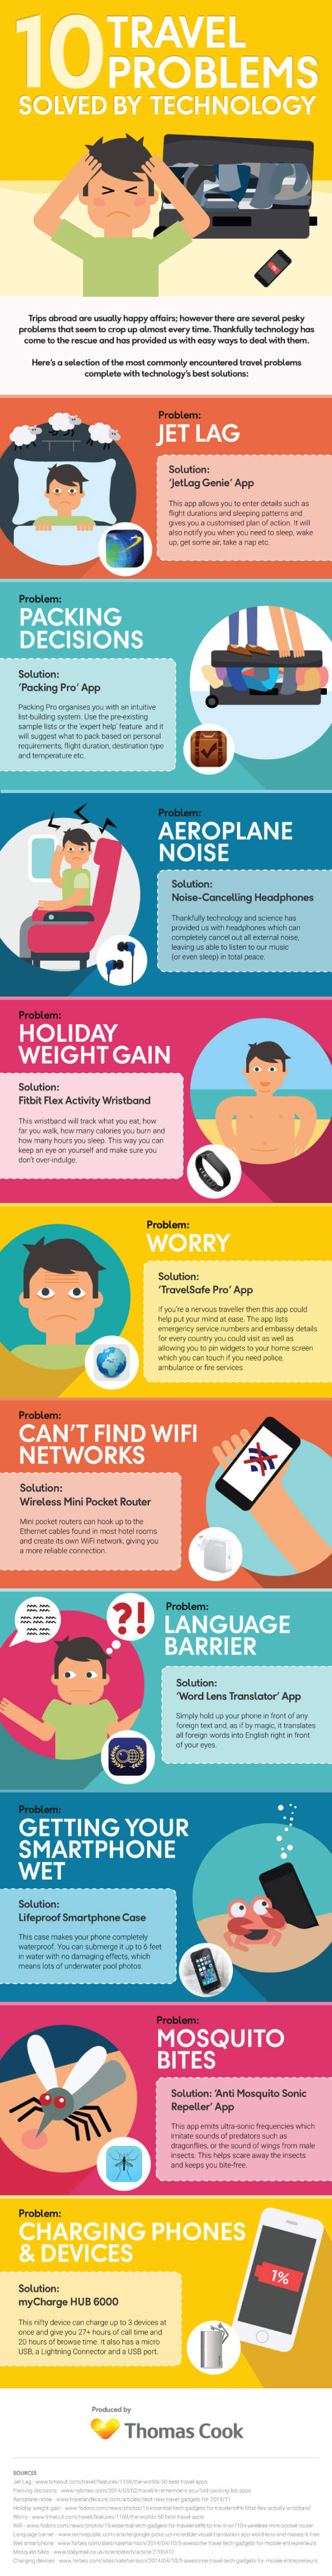 Image Titled 10 Travel Problems That You Will Solve With